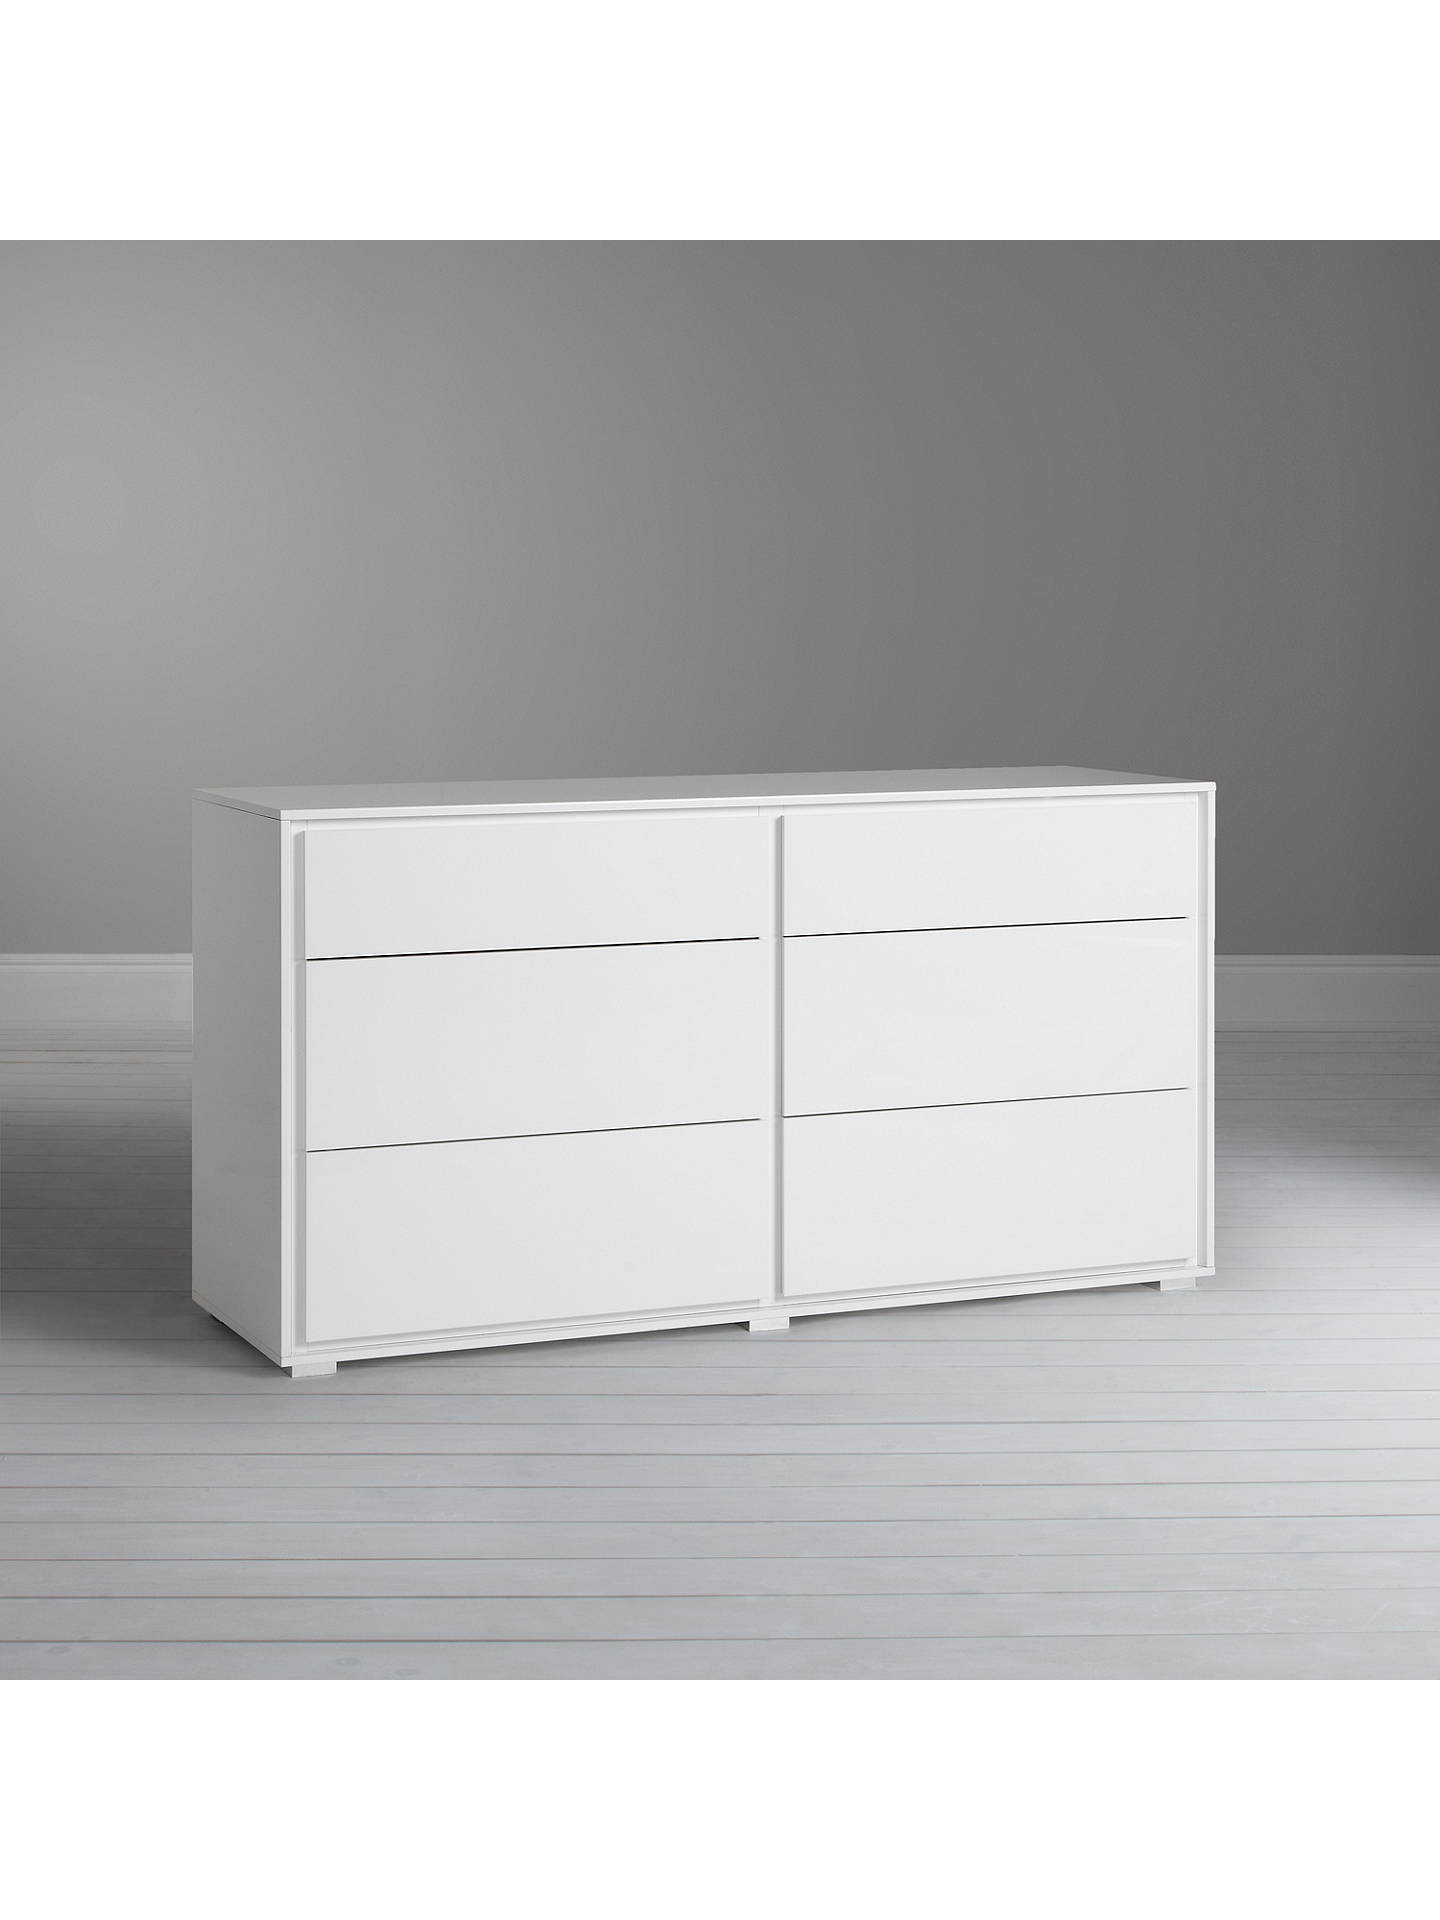 c318b4fa1510 Buy John Lewis & Partners Napoli 6 Drawer Chest, Gloss White Online at  johnlewis.